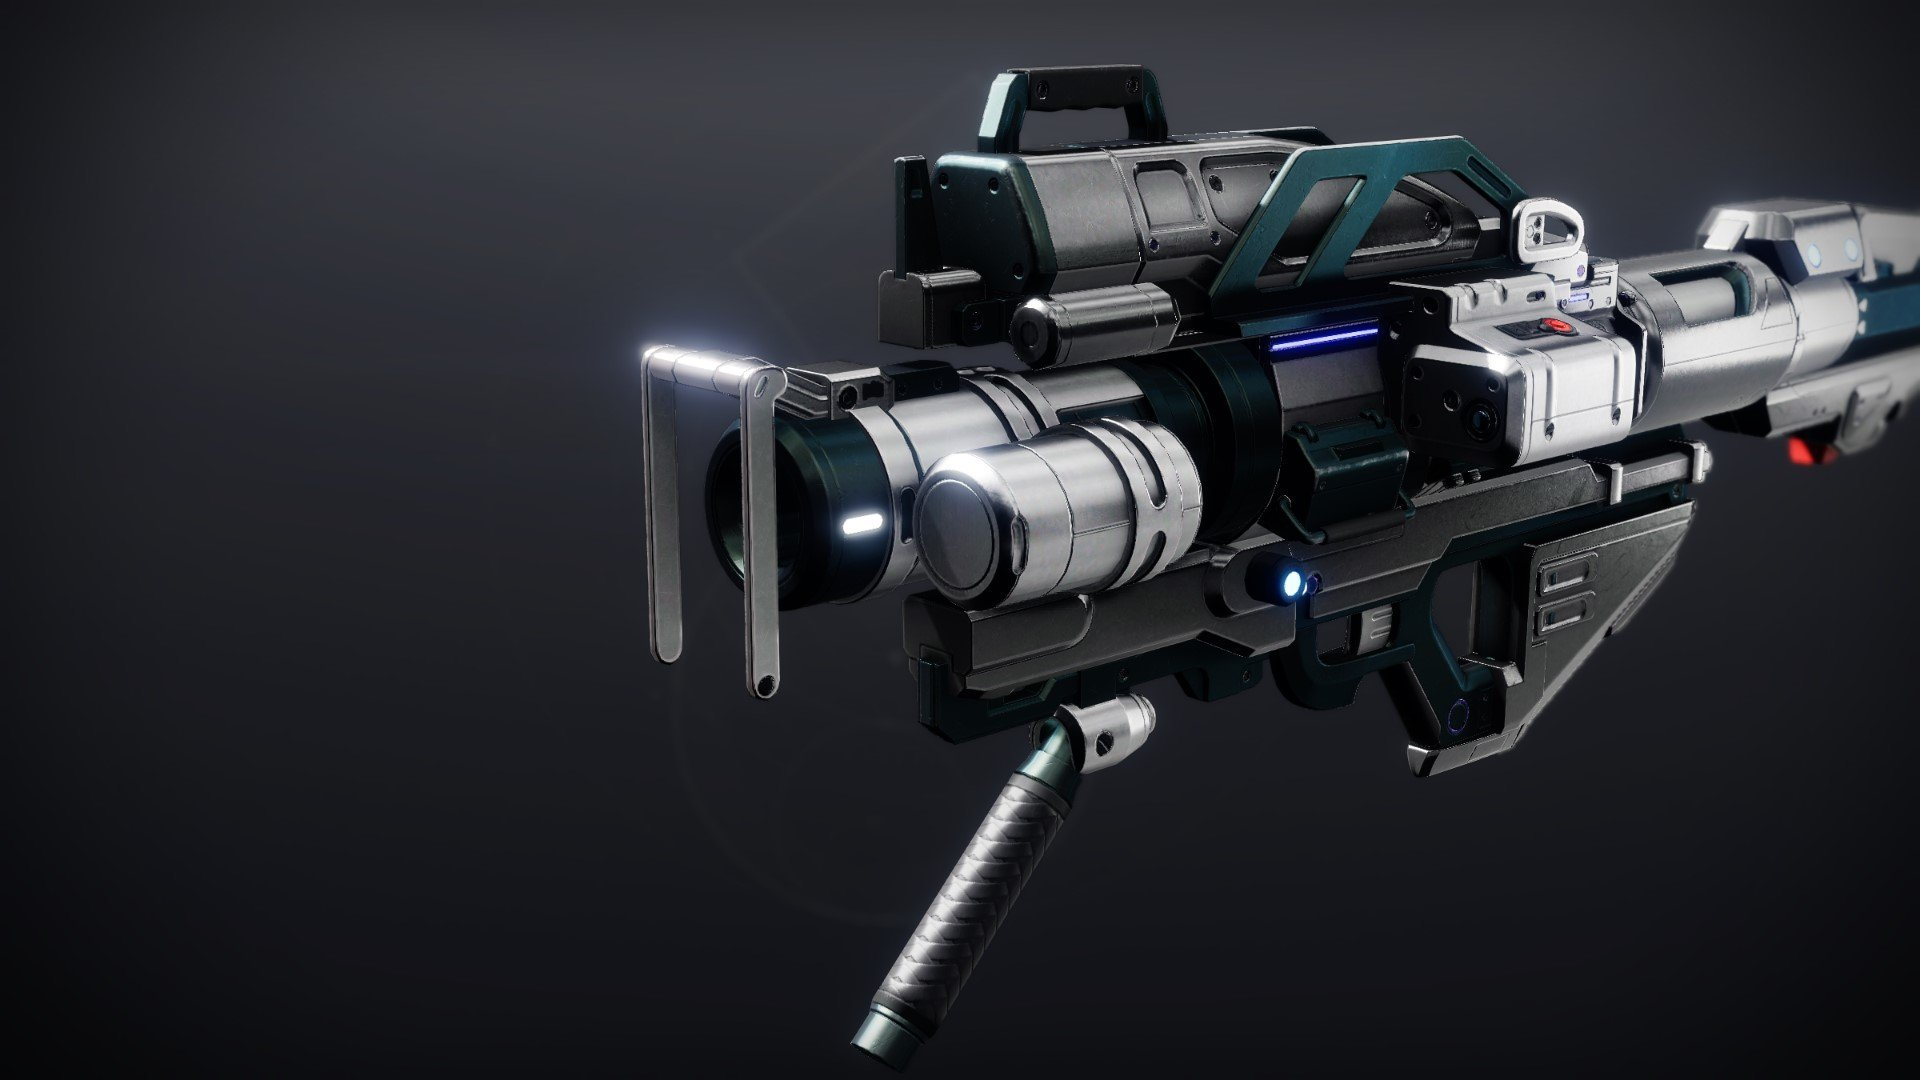 An in-game render of the Hezen Vengeance (Timelost).